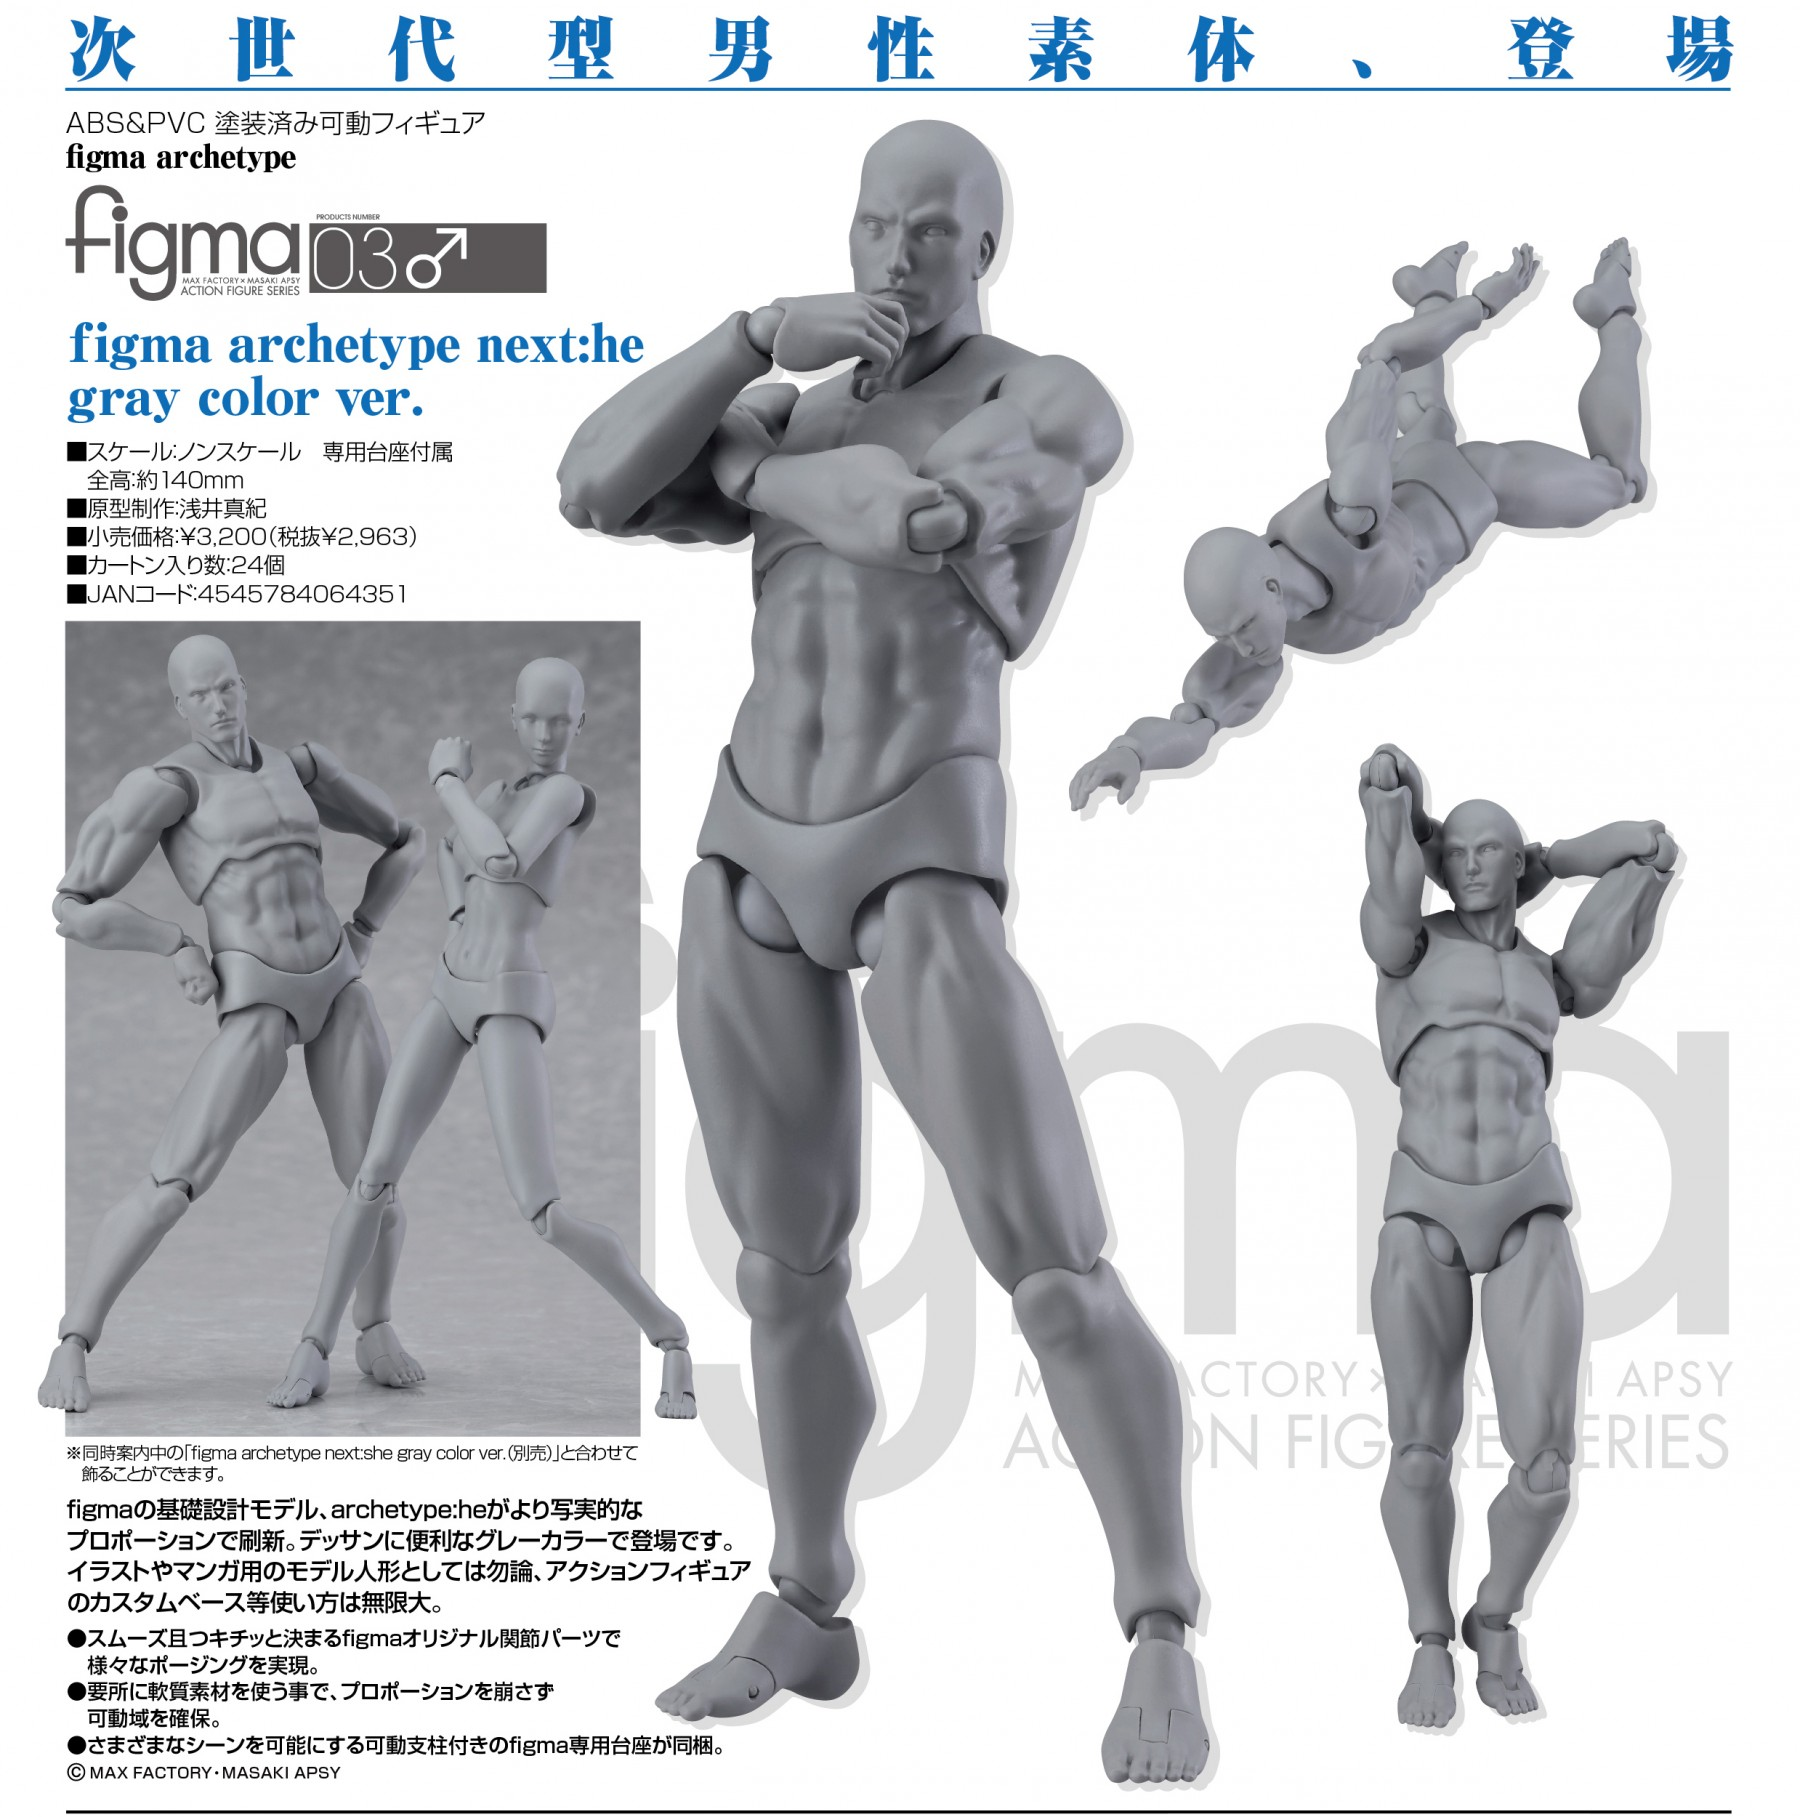 Figma #03 Archetype Next He Gray Color ver. Max Factory Re release